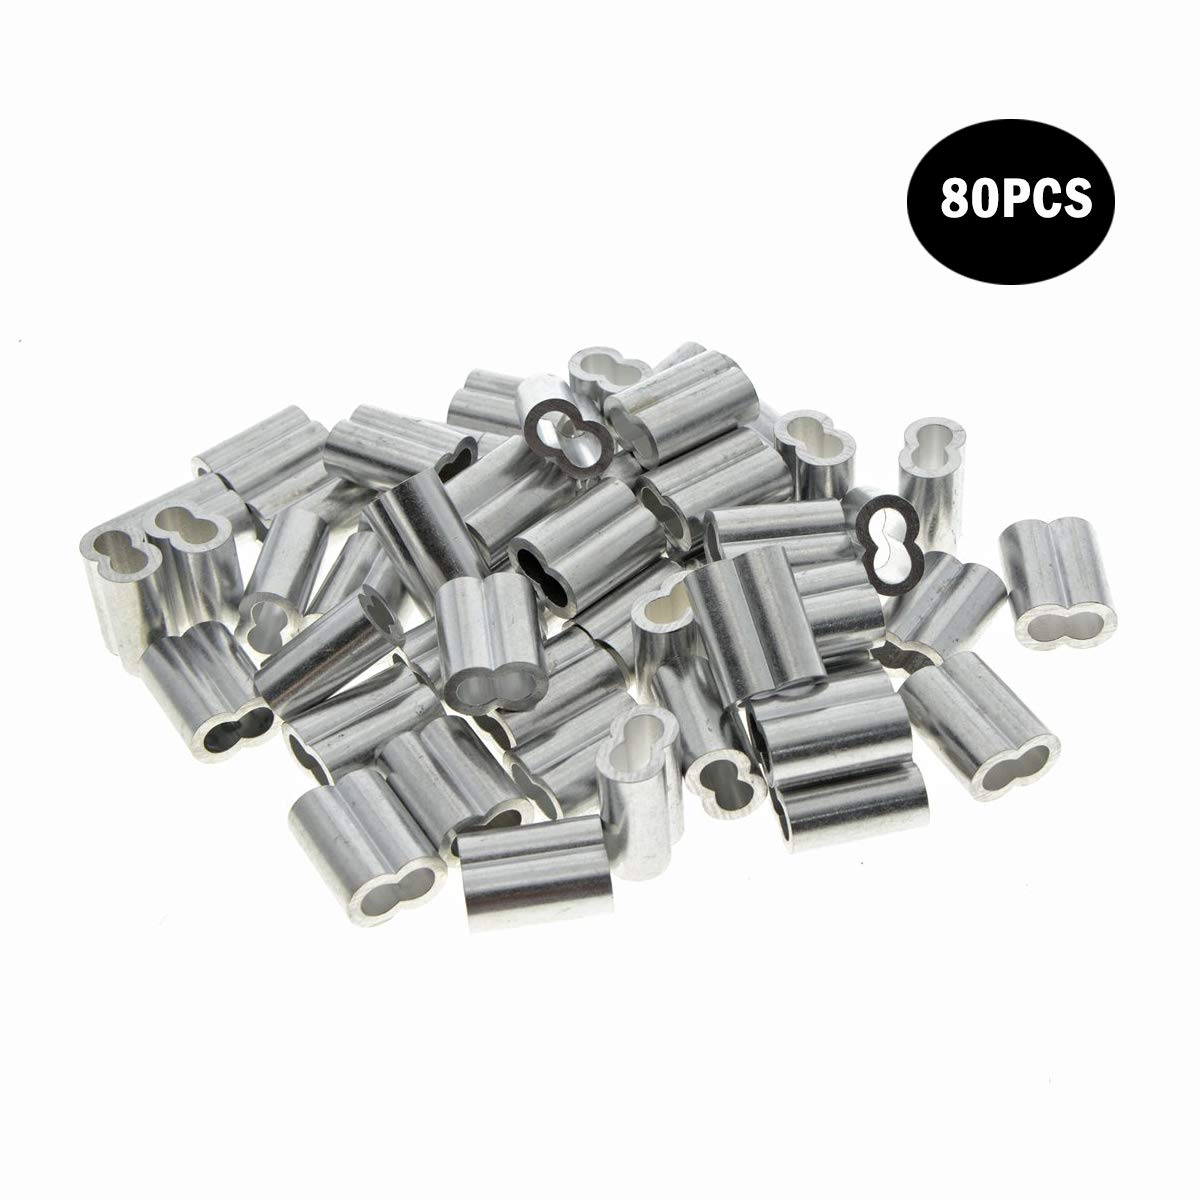 1mm Diameter Wire Rope Aluminum Sleeves Clip Fittings Cable Crimps 100PCS Kitchen-dream 0.04 inch 50PCS//80PCS//100PCS